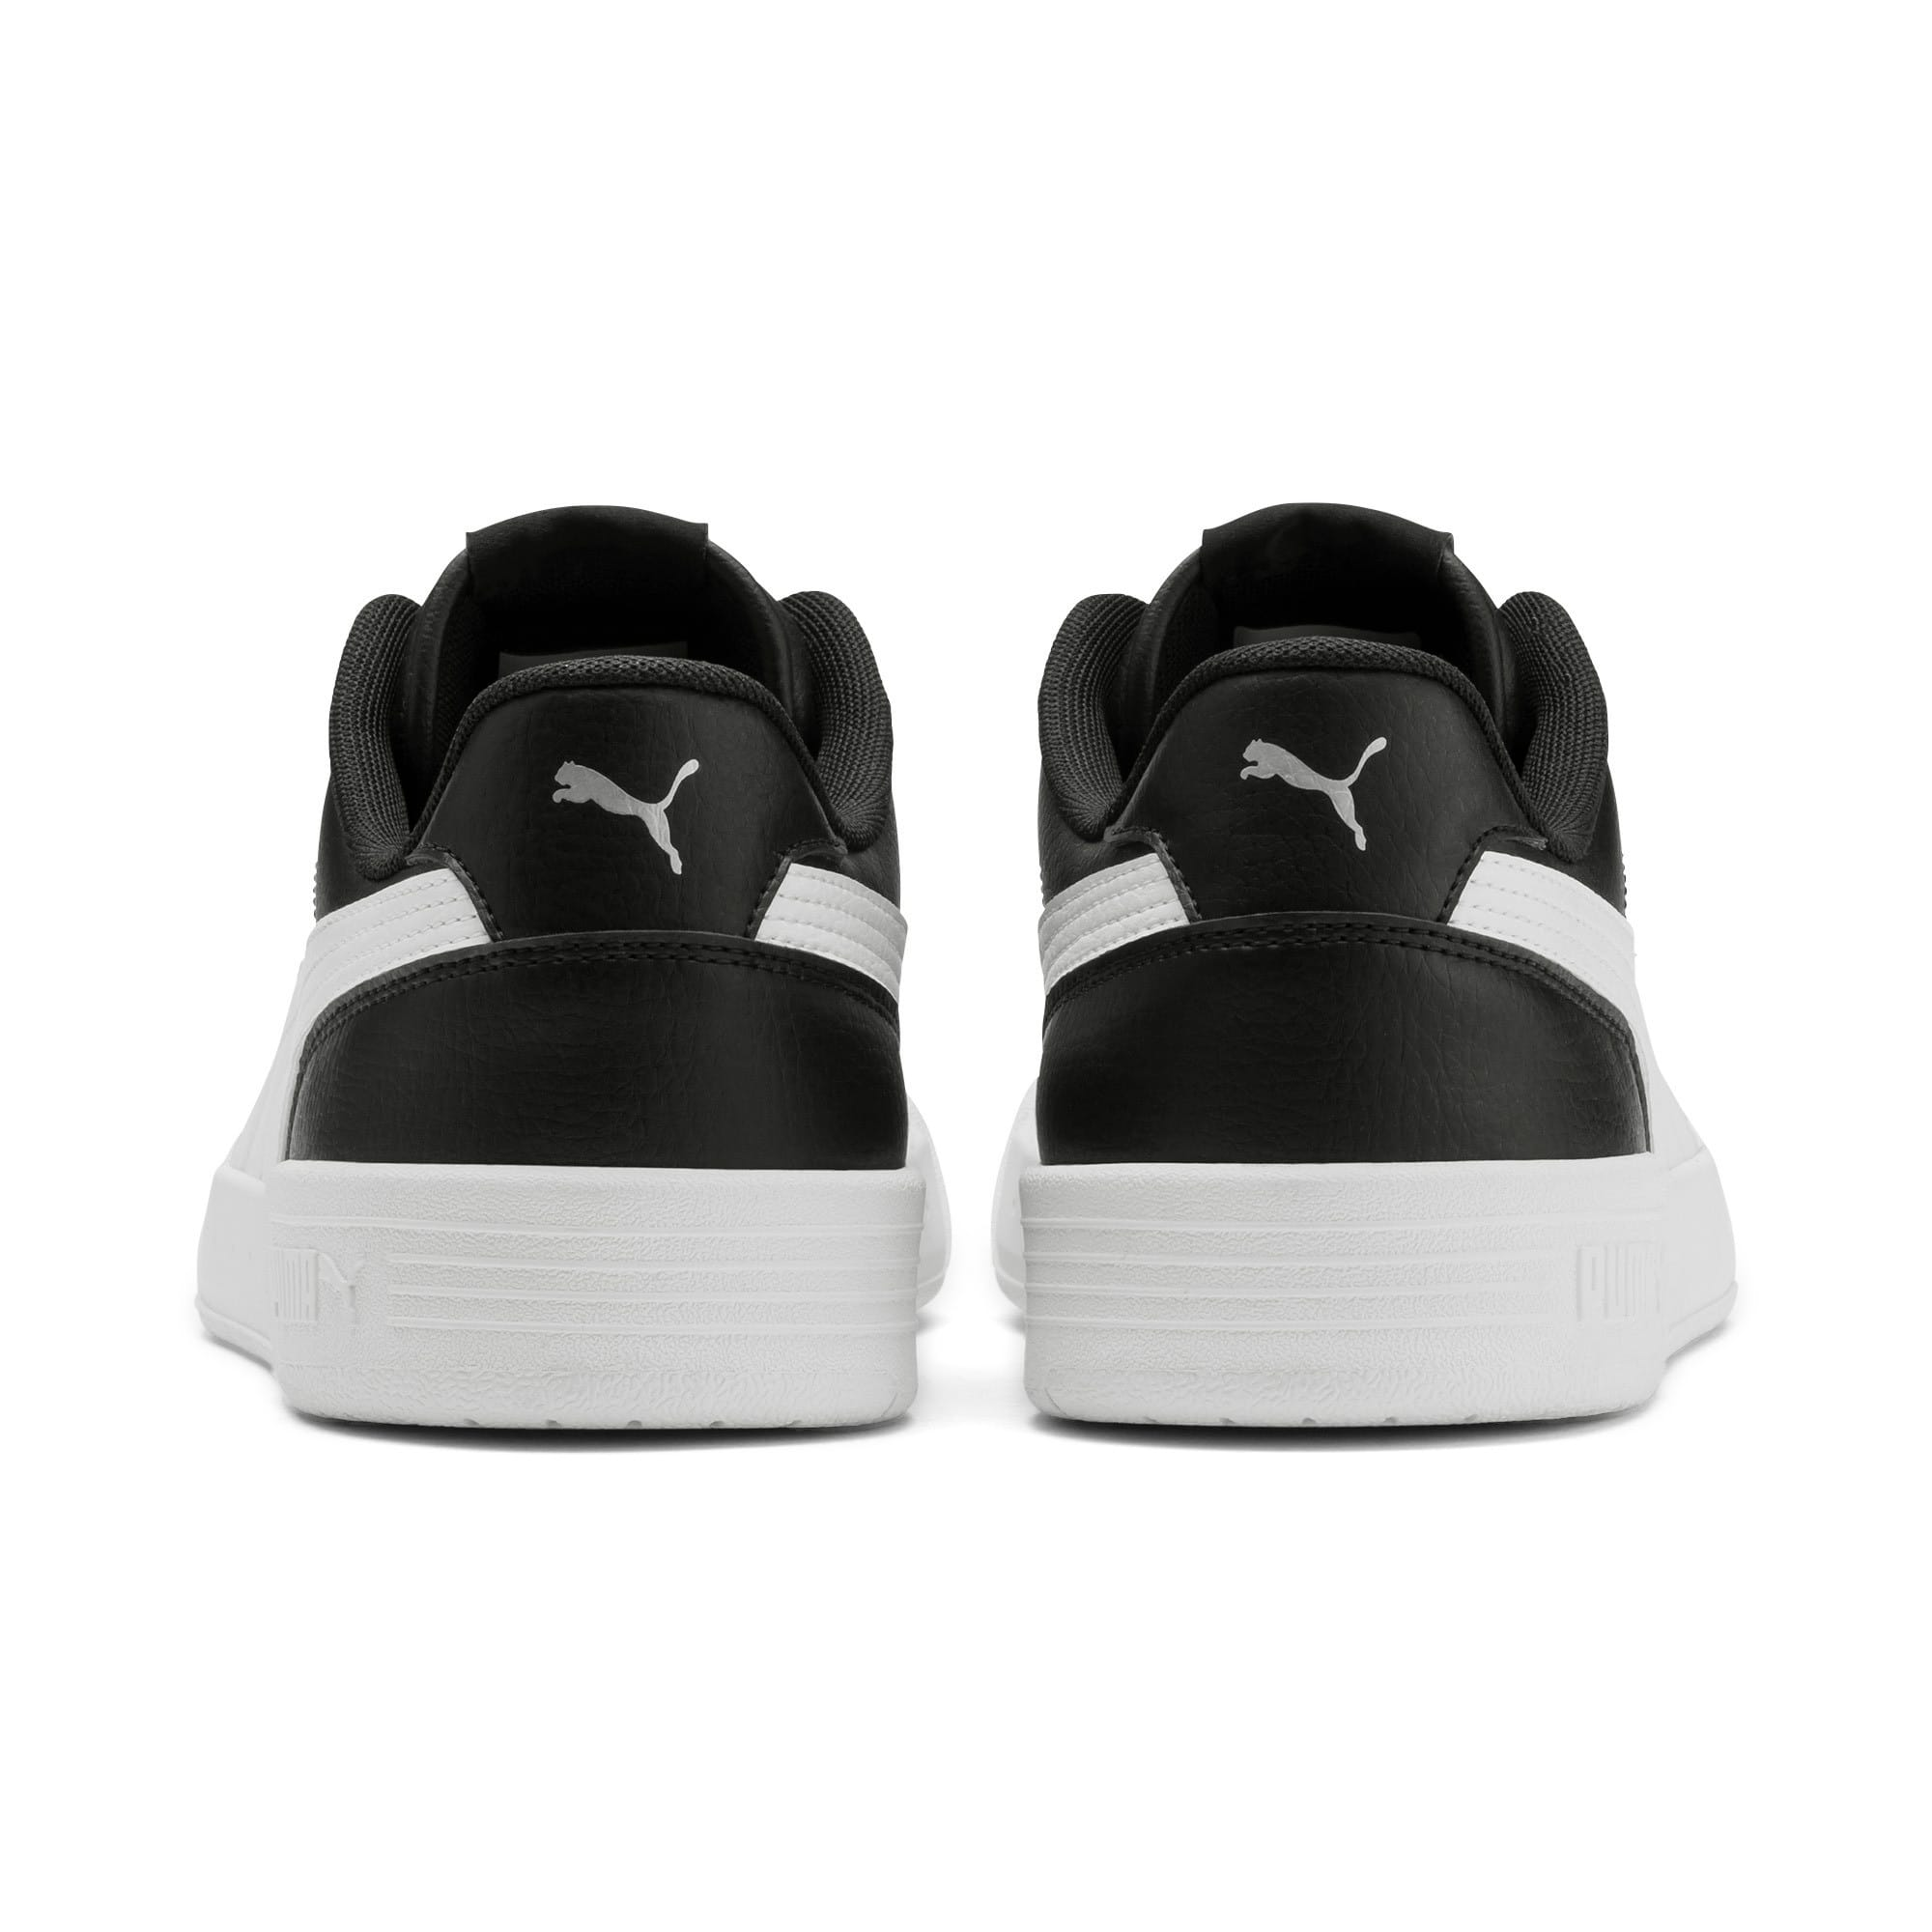 Thumbnail 4 of Caracal Sneakers, Puma Black-Puma White, medium